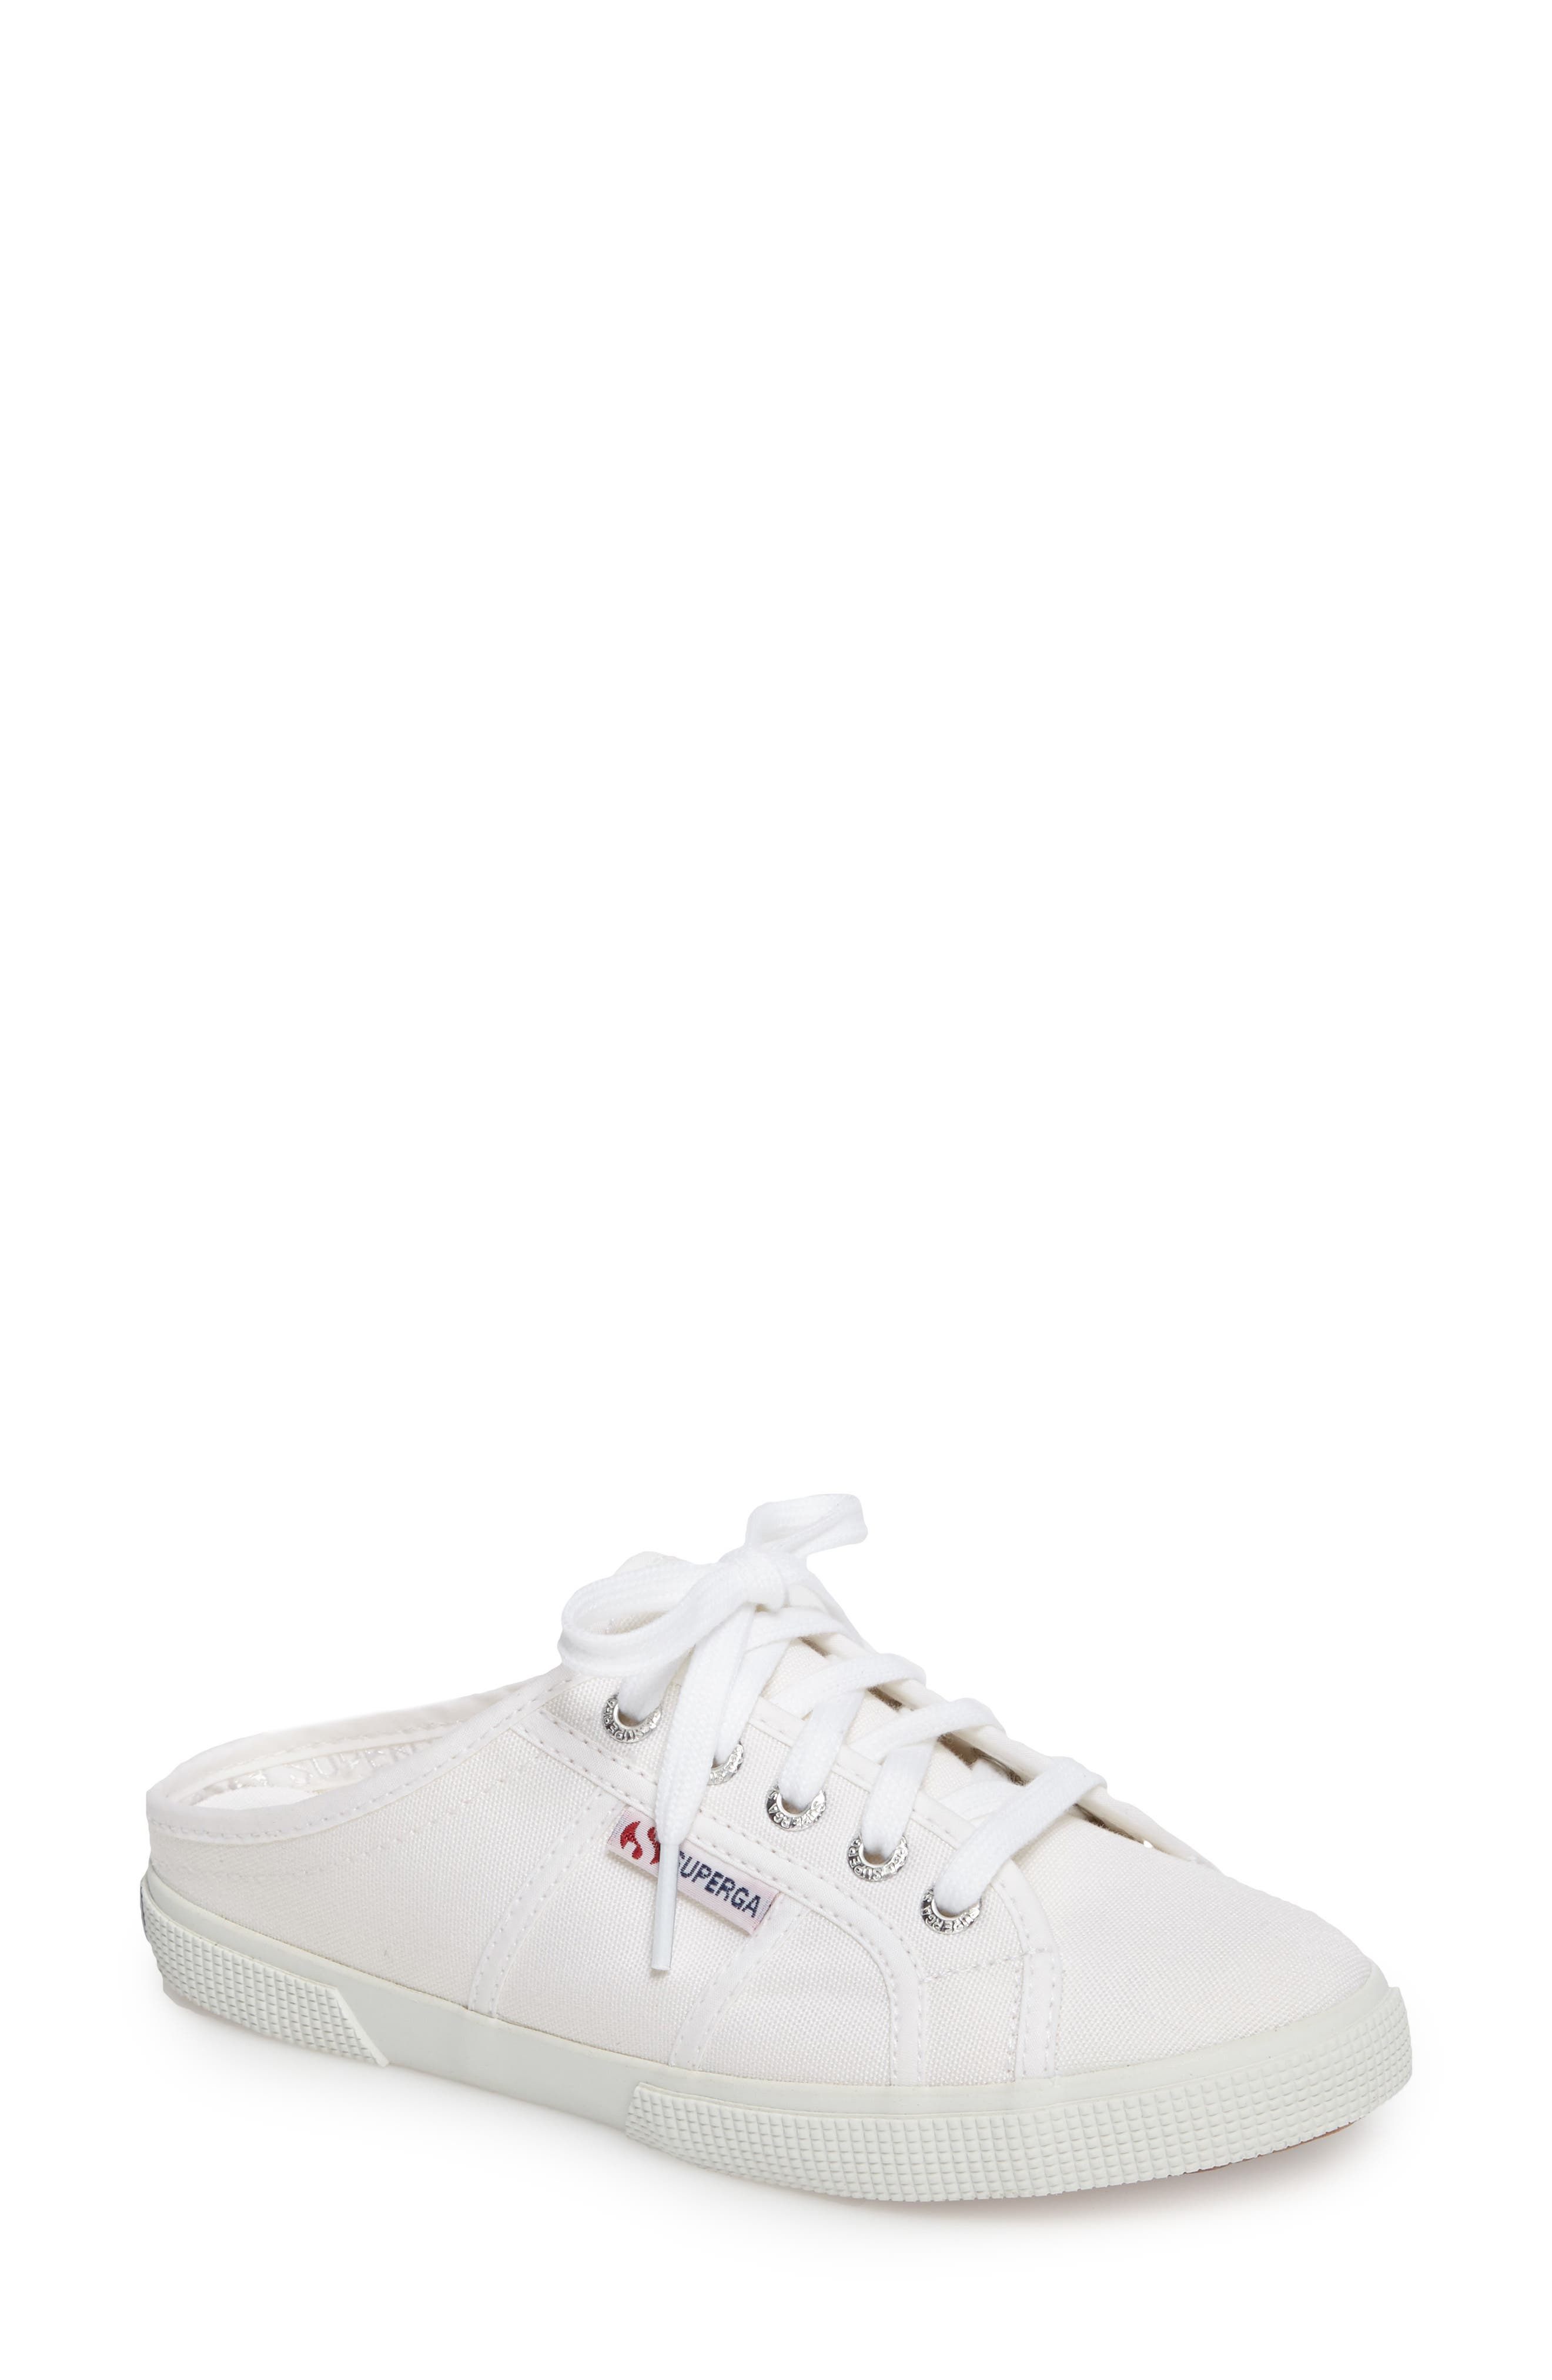 Alternate Image 1 Selected - Superga 2288 Sneaker Mule (Women)